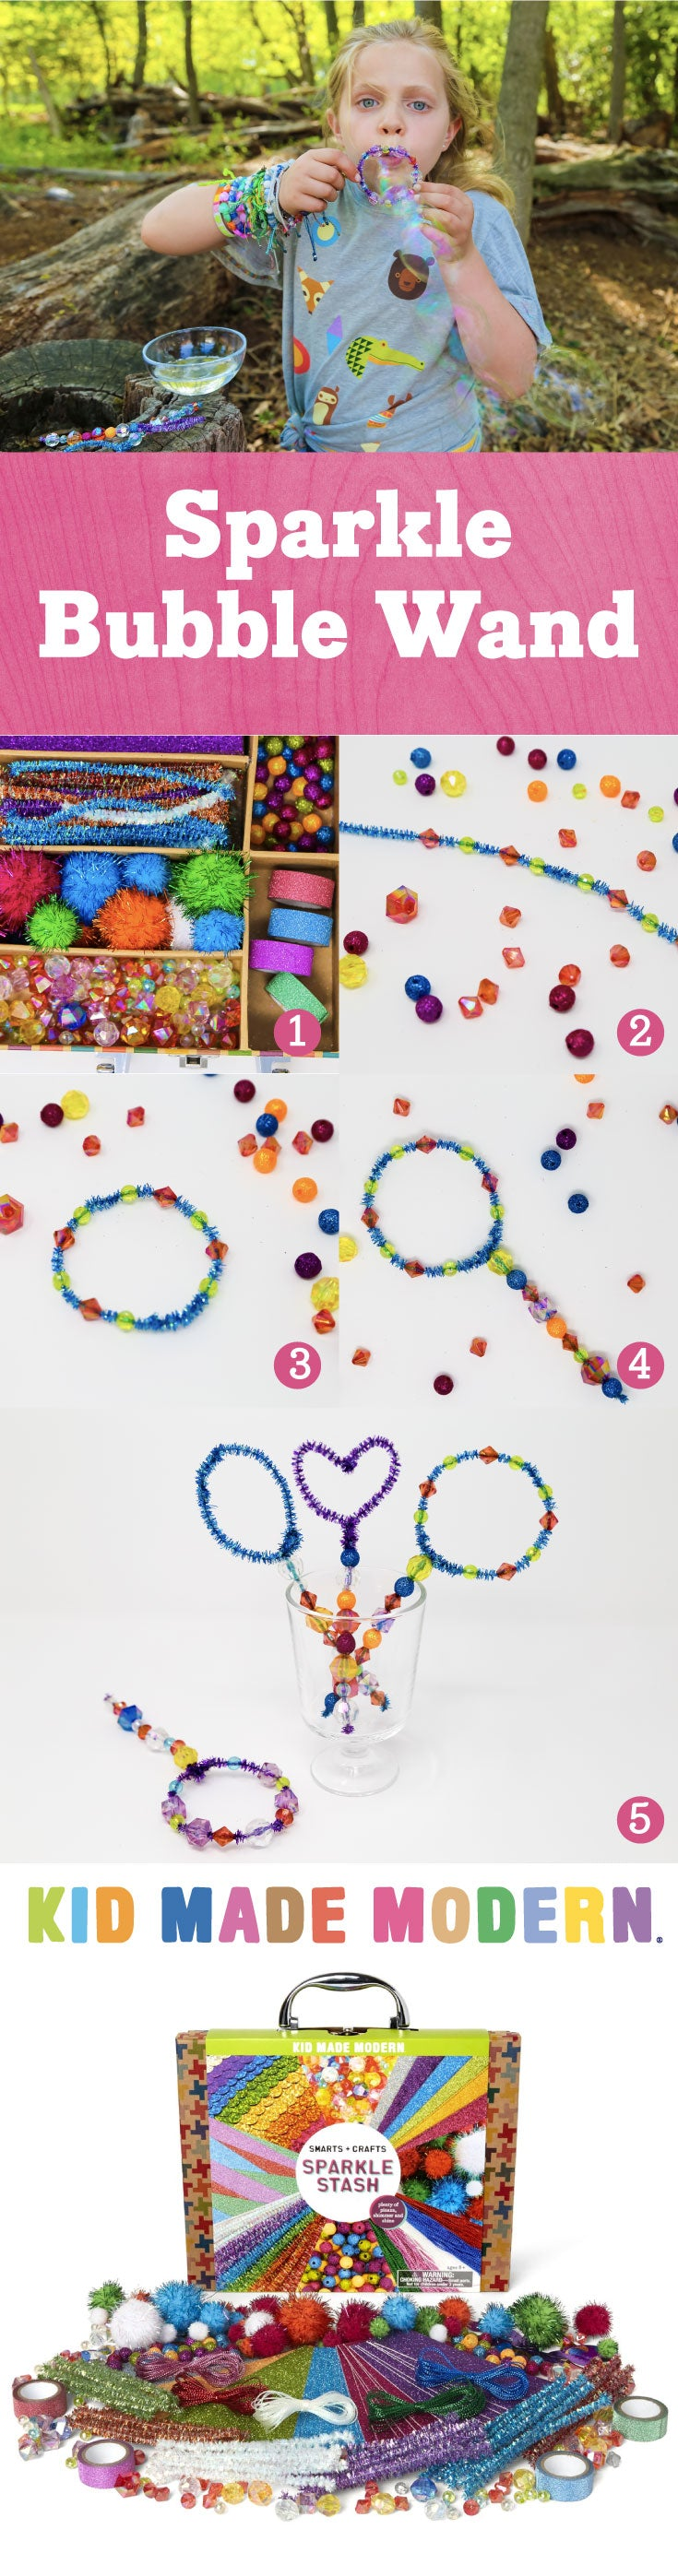 Sparkle Bubble Wand Pinterest